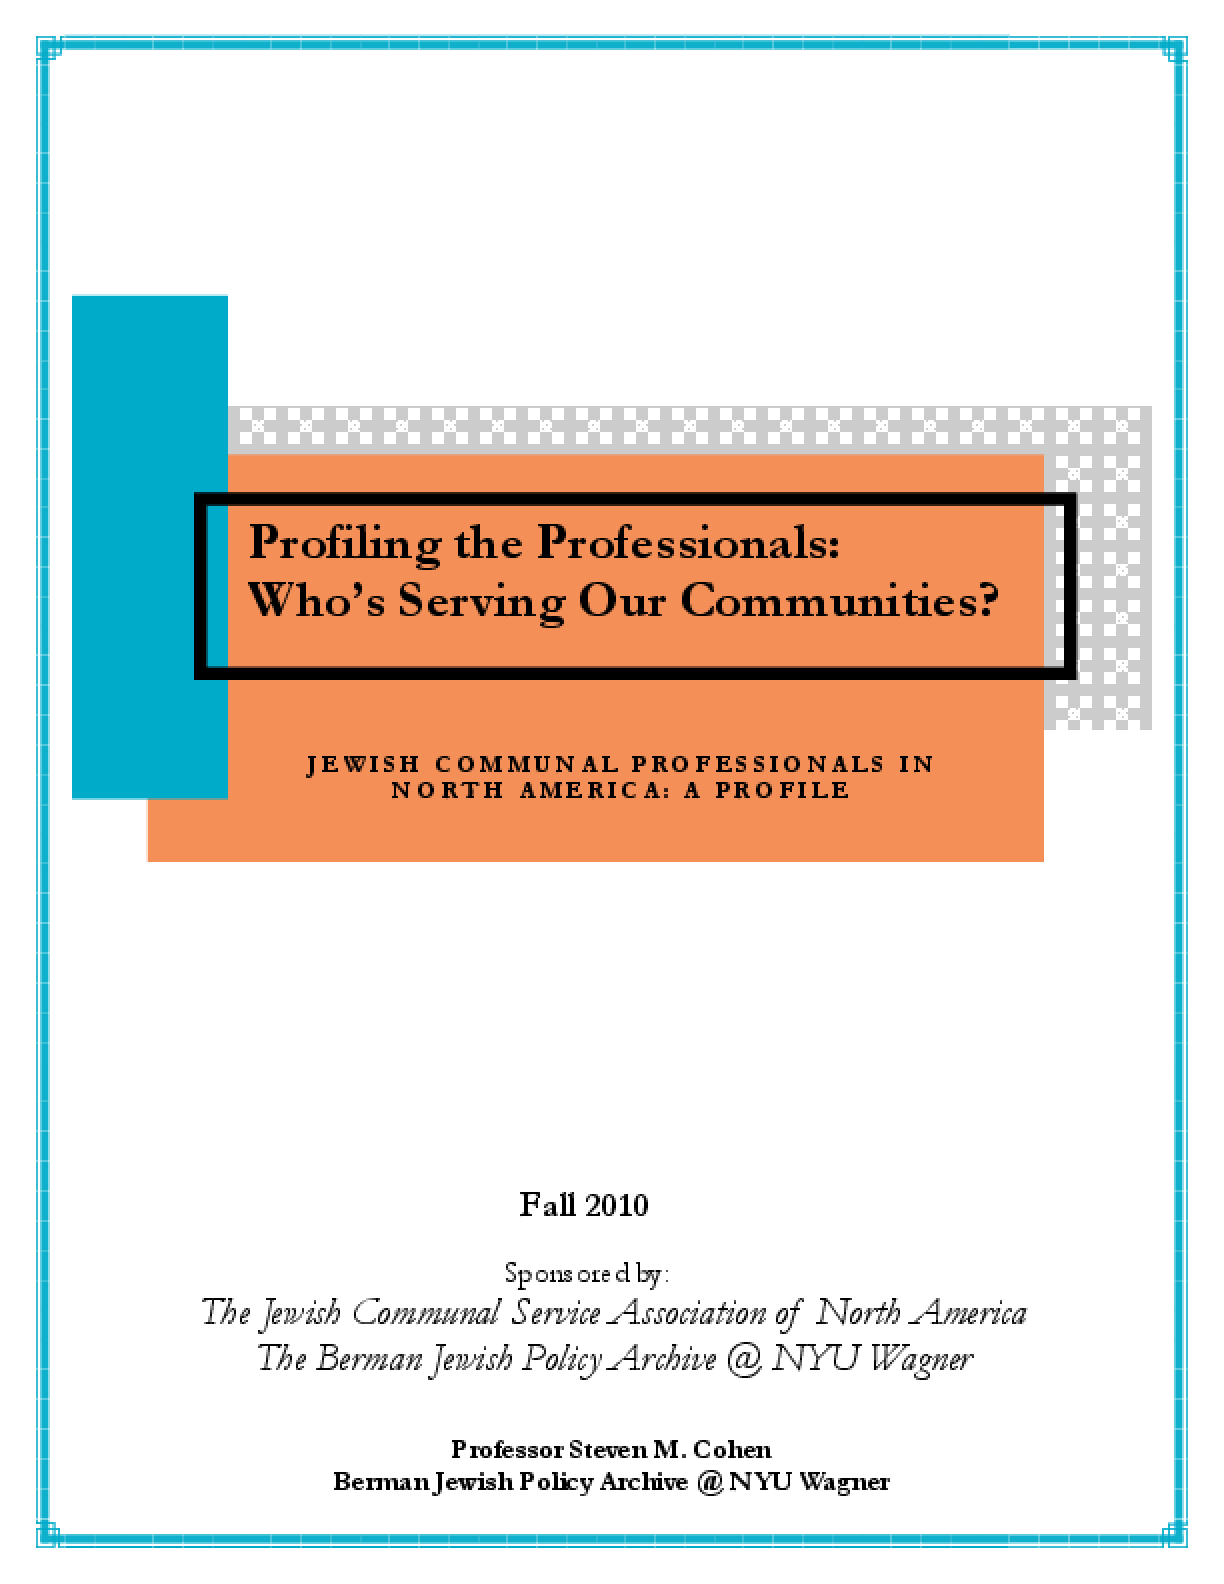 Profiling the Professionals: Who's Serving Our Communities?